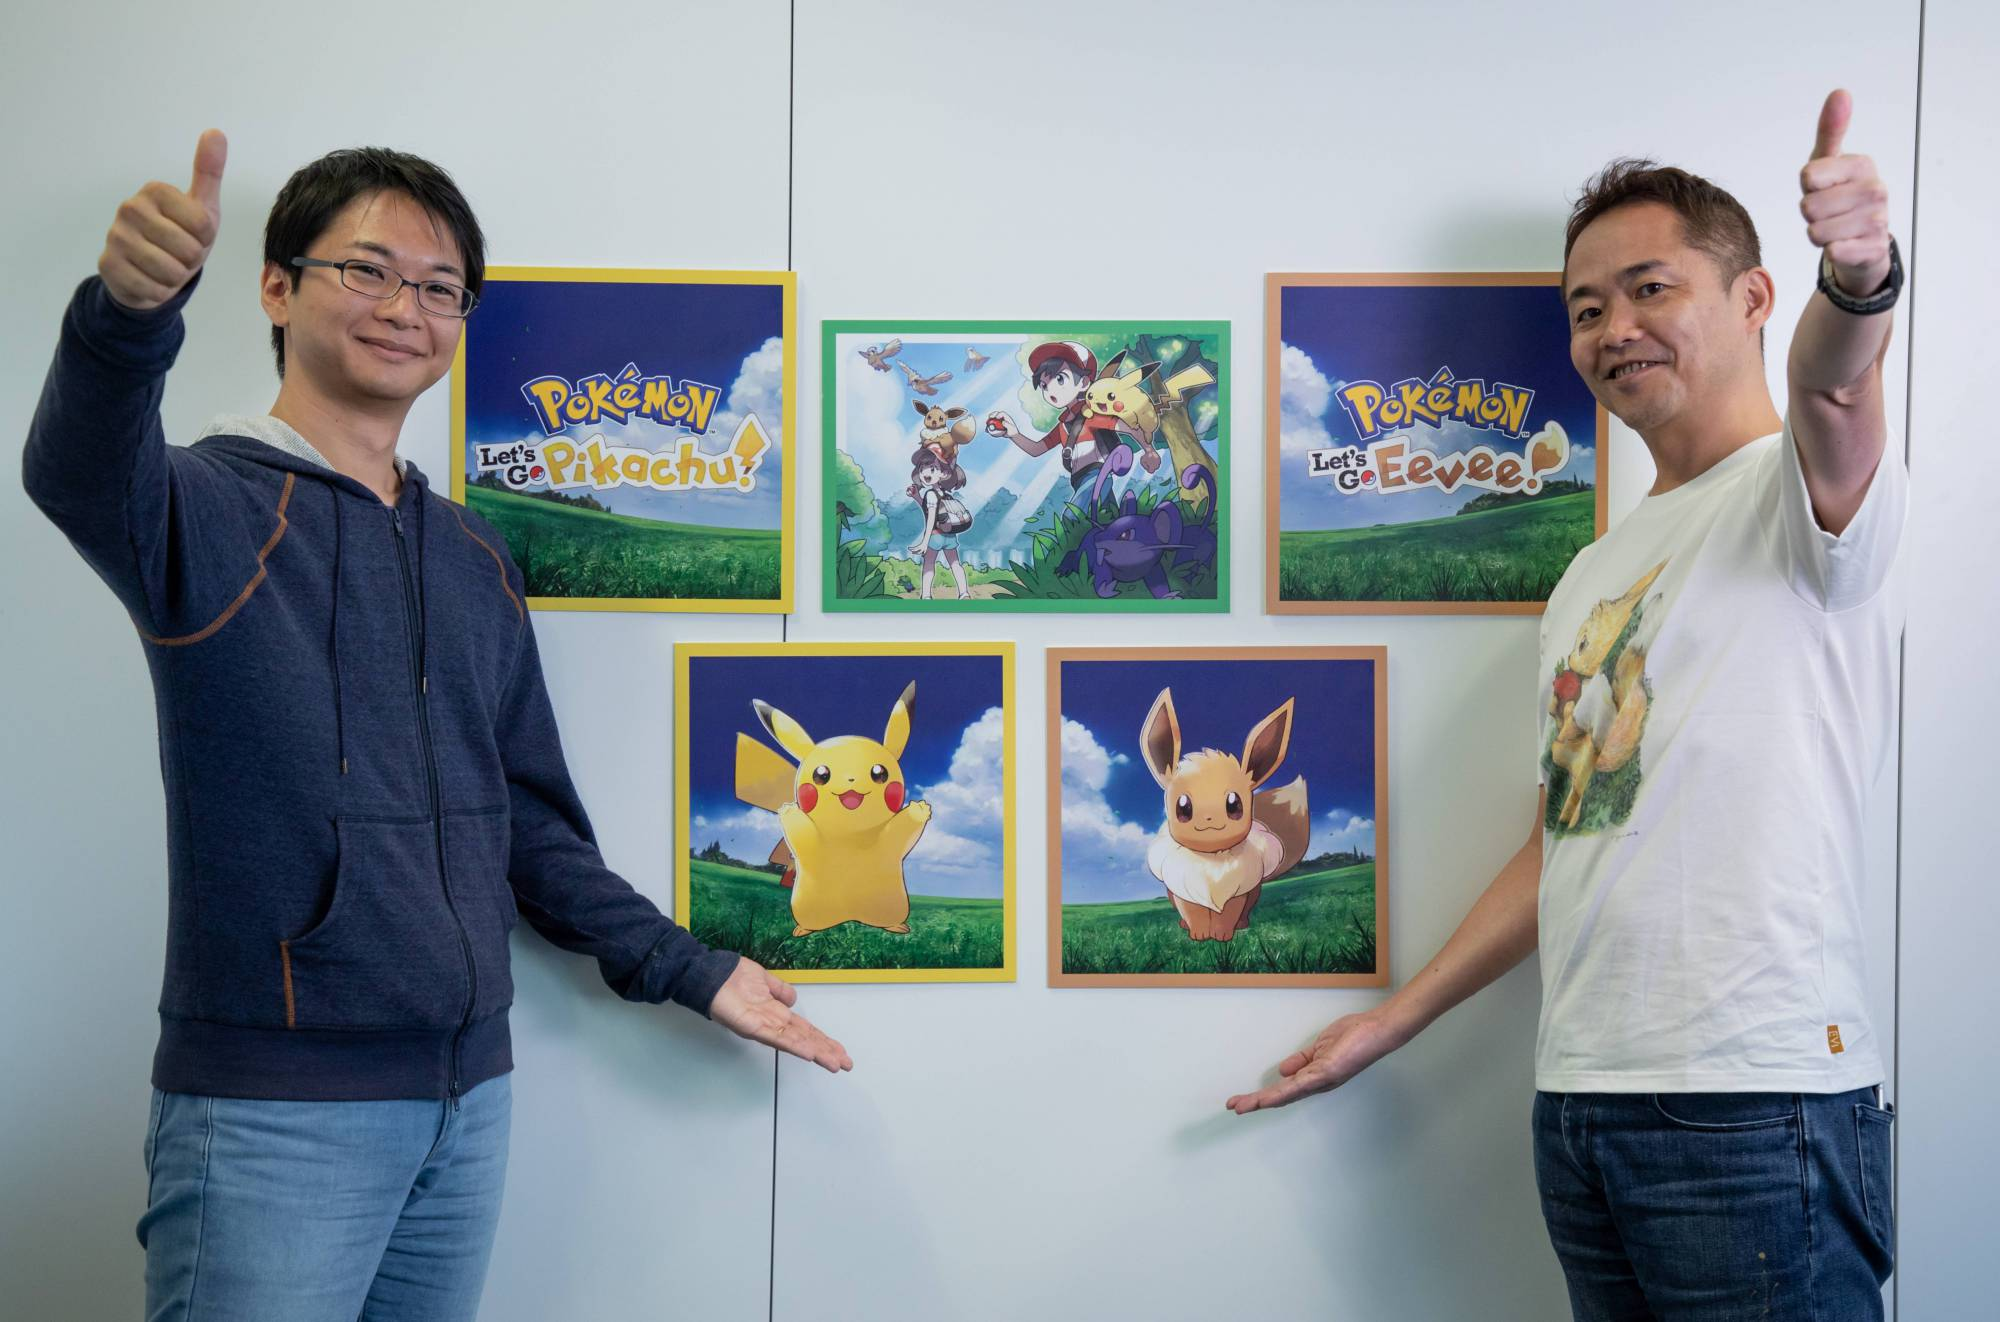 Kensaku Nabana (left), lead environment designer for Pokémon: Let's Go, and Junichi Masuda, director of Pokémon: Let's Go